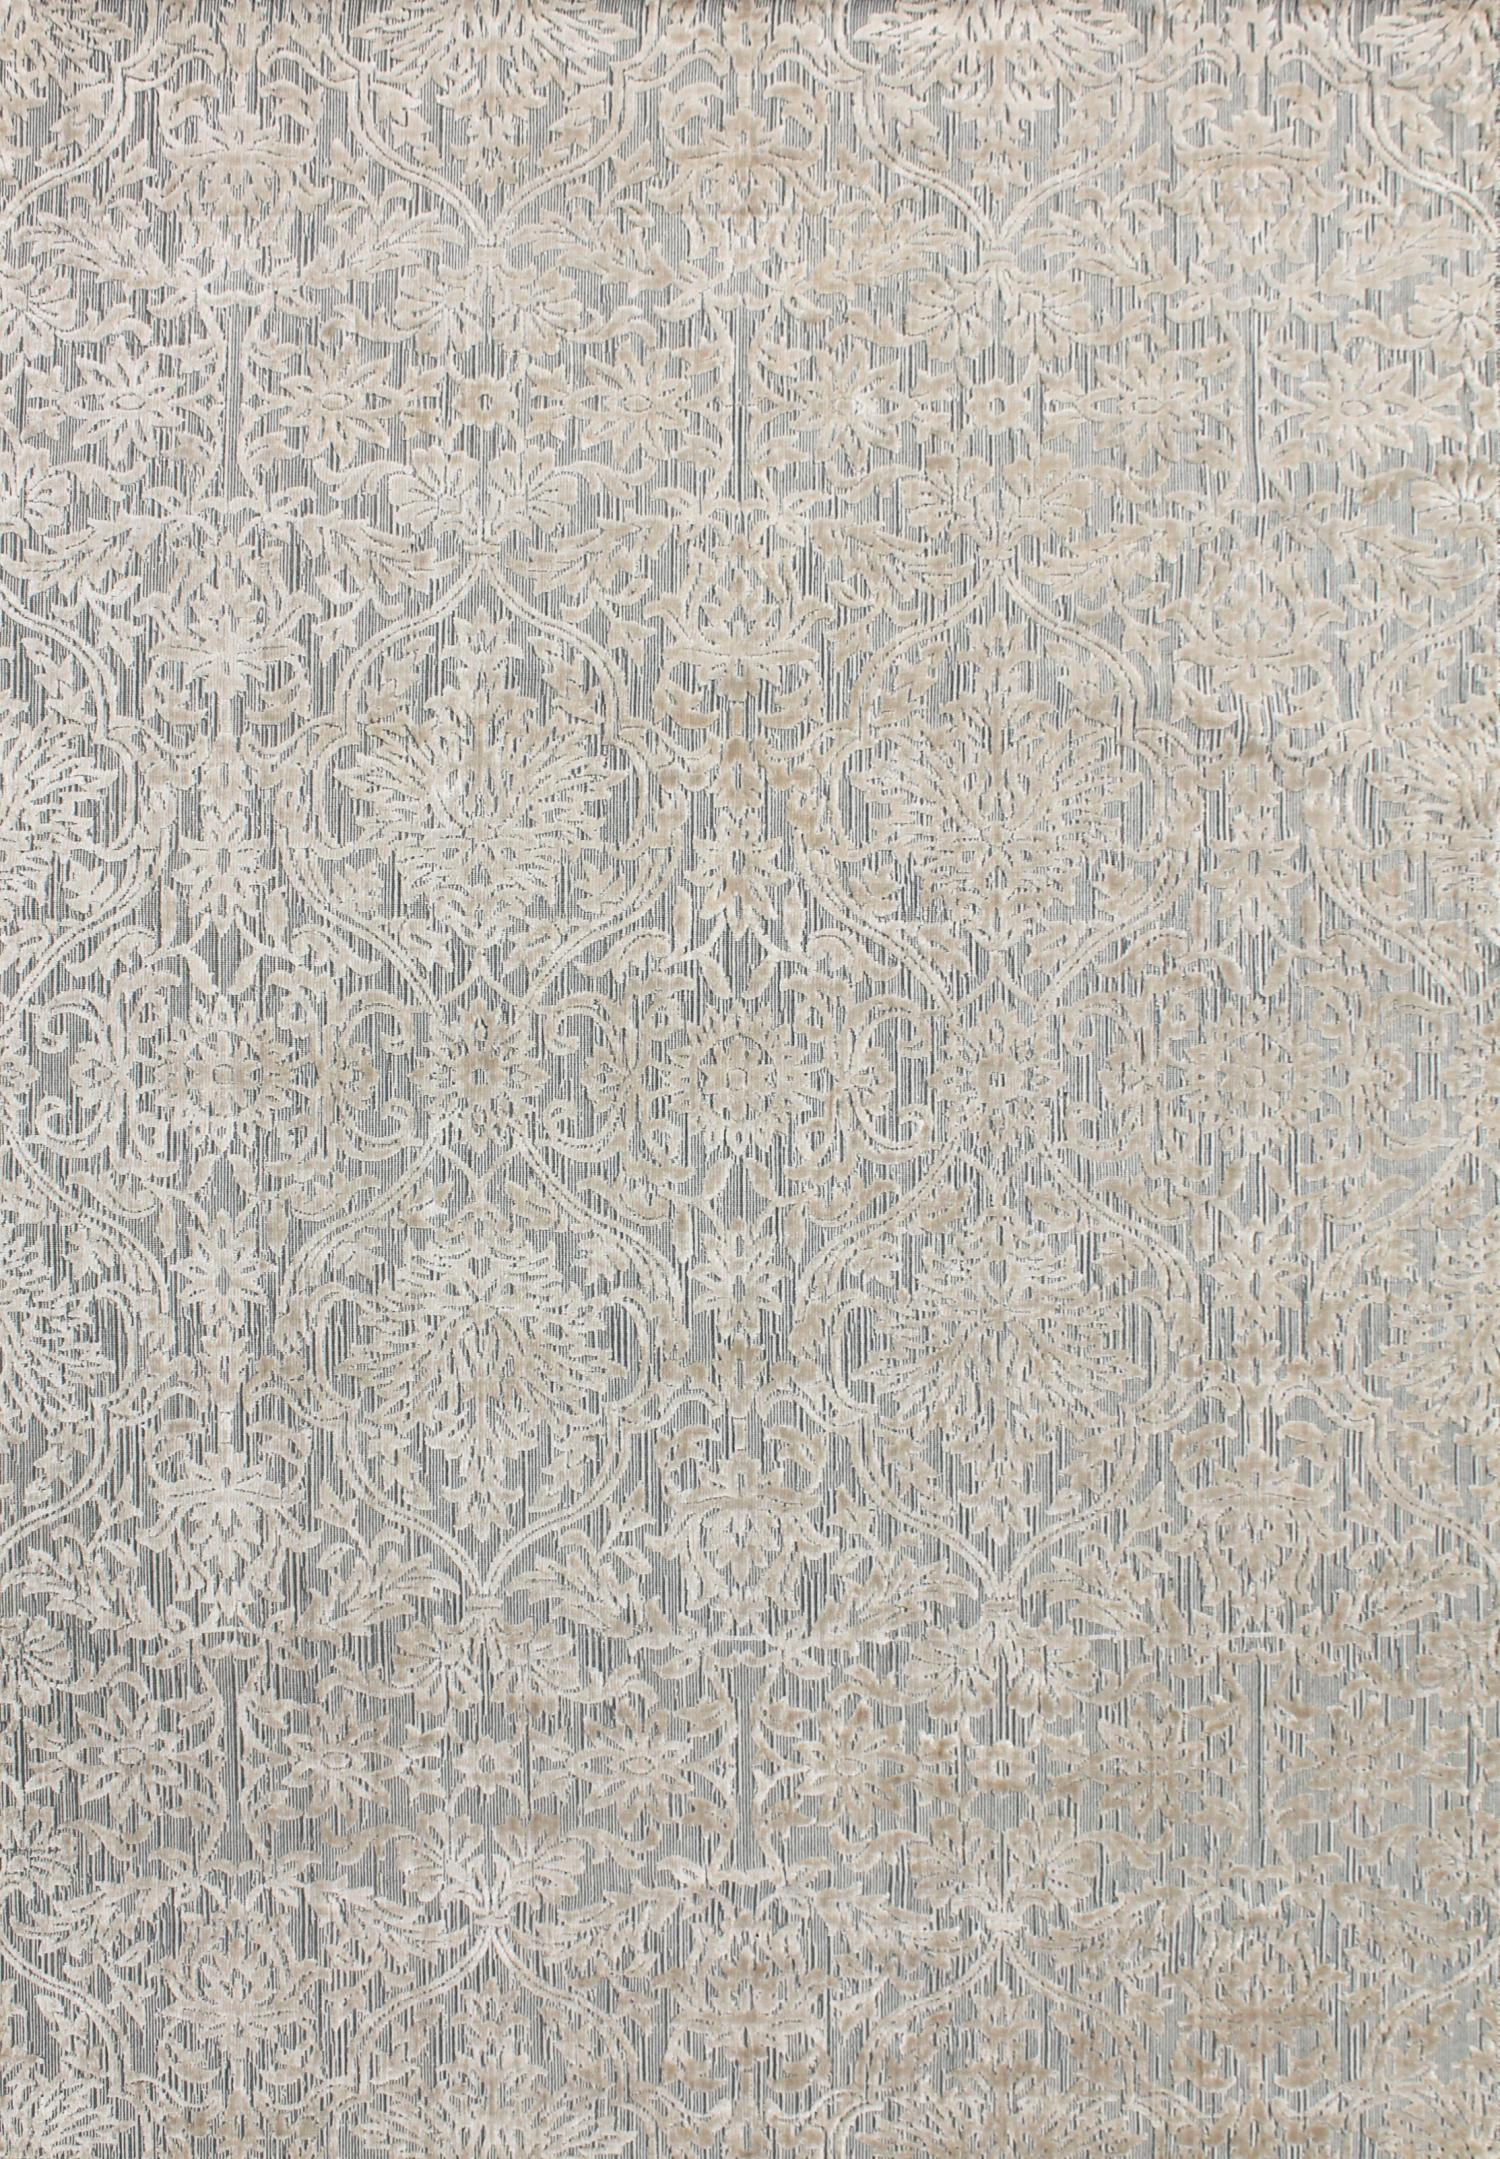 metz-silver-art-silk-raised-traditional-rugs-Stans-Perth-beige